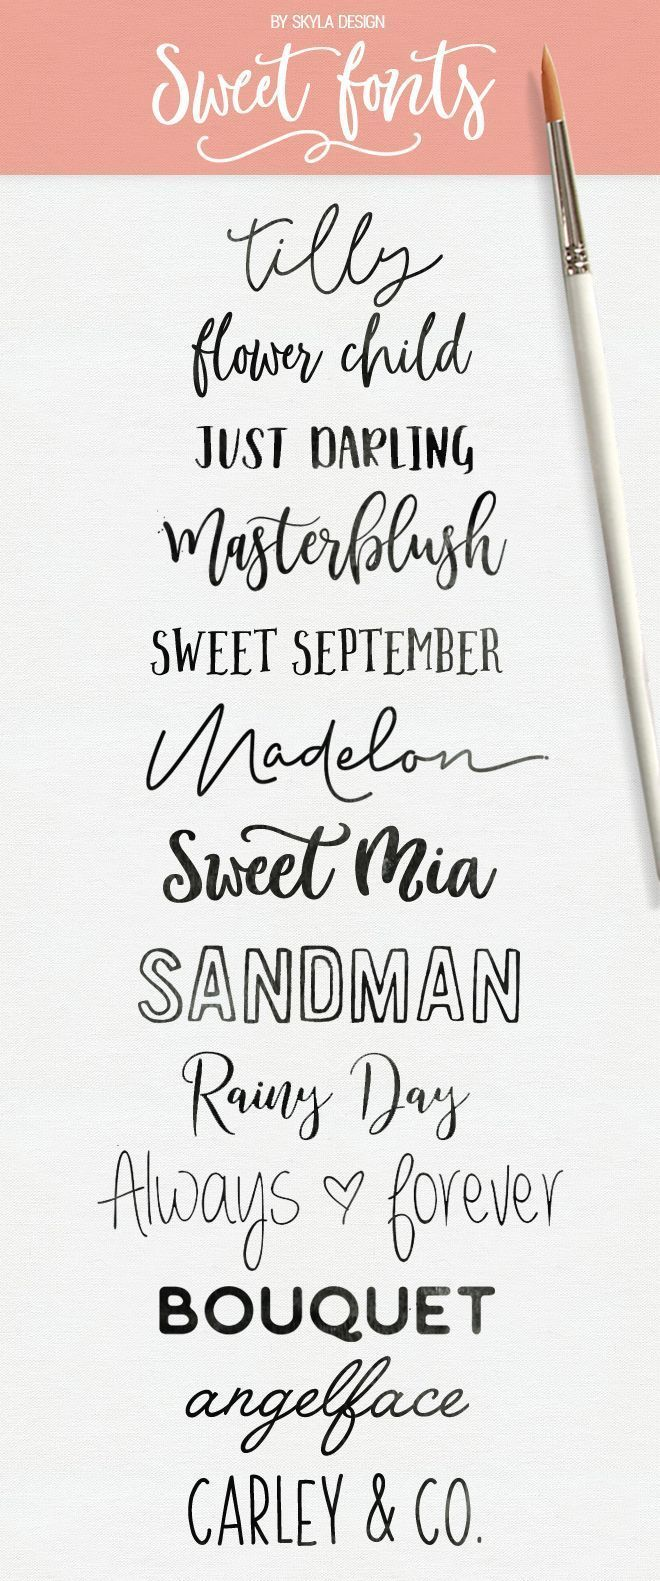 Calligraphy Font Modern Free Here Are Some Fresh Sweet Modern Calligraphy Handwritten Fonts